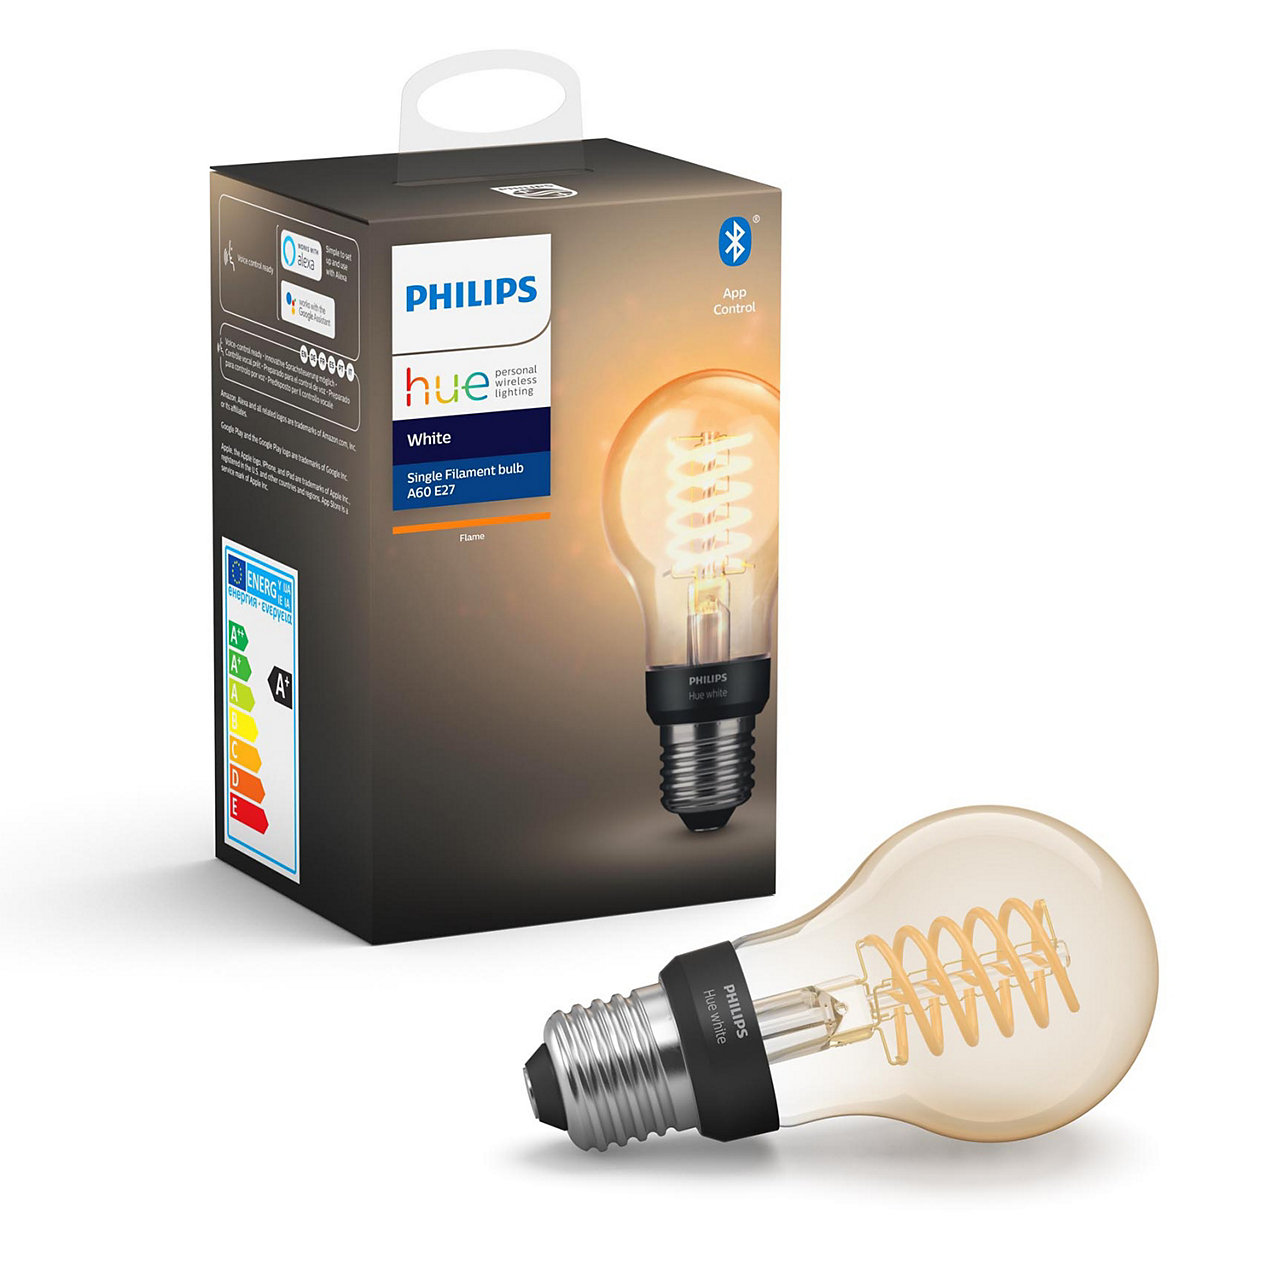 Hue White Filament Bulb A60 E27 Bluetooth